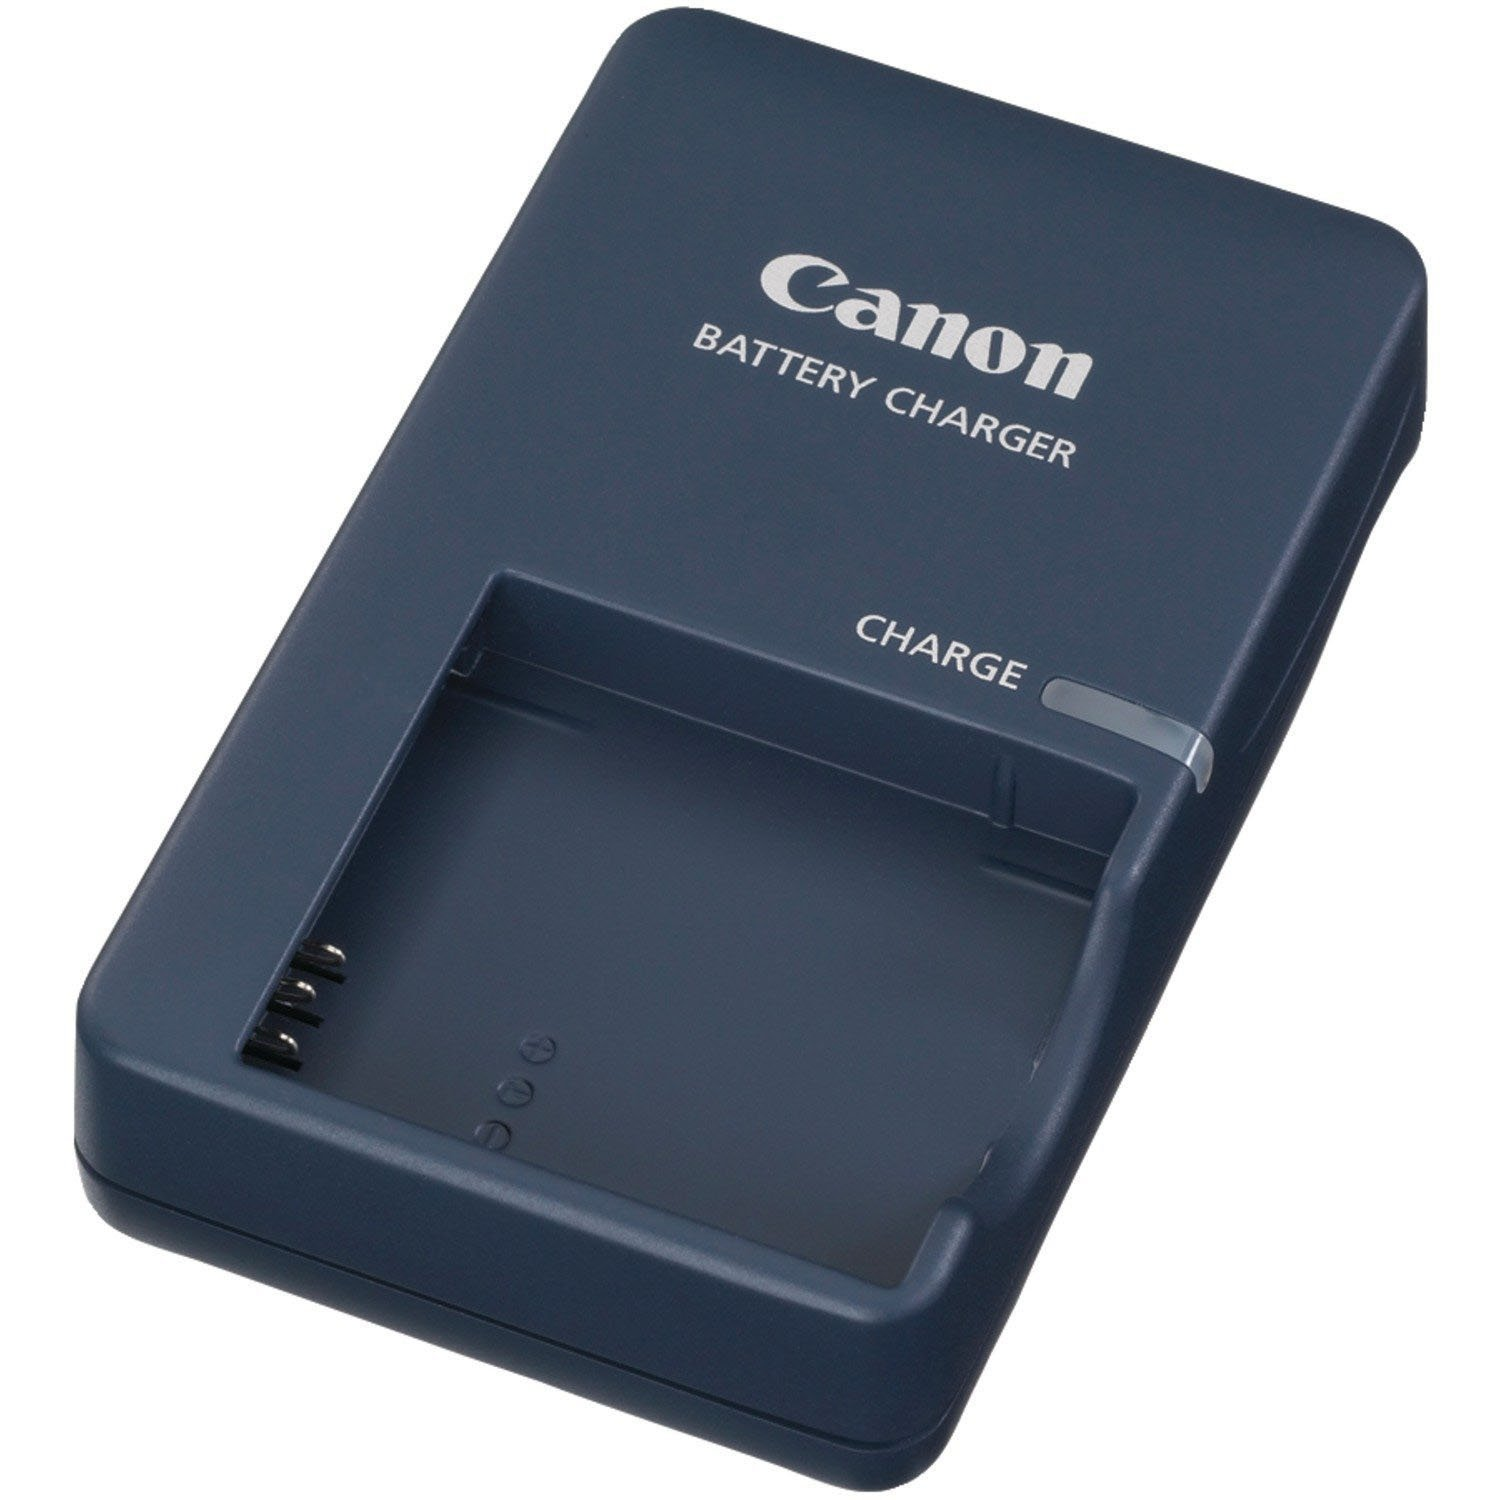 Cb-2lv Battery Charger for the Canon Nb-4l Li-ion Battery and Canon PowerShot SD40, SD30, SD200, SD300, SD400, SD430, SD450, SD600, SD630, SD750, SD780 IS, SD940 IS, SD960 IS, SD1000, SD1100 IS, SD110